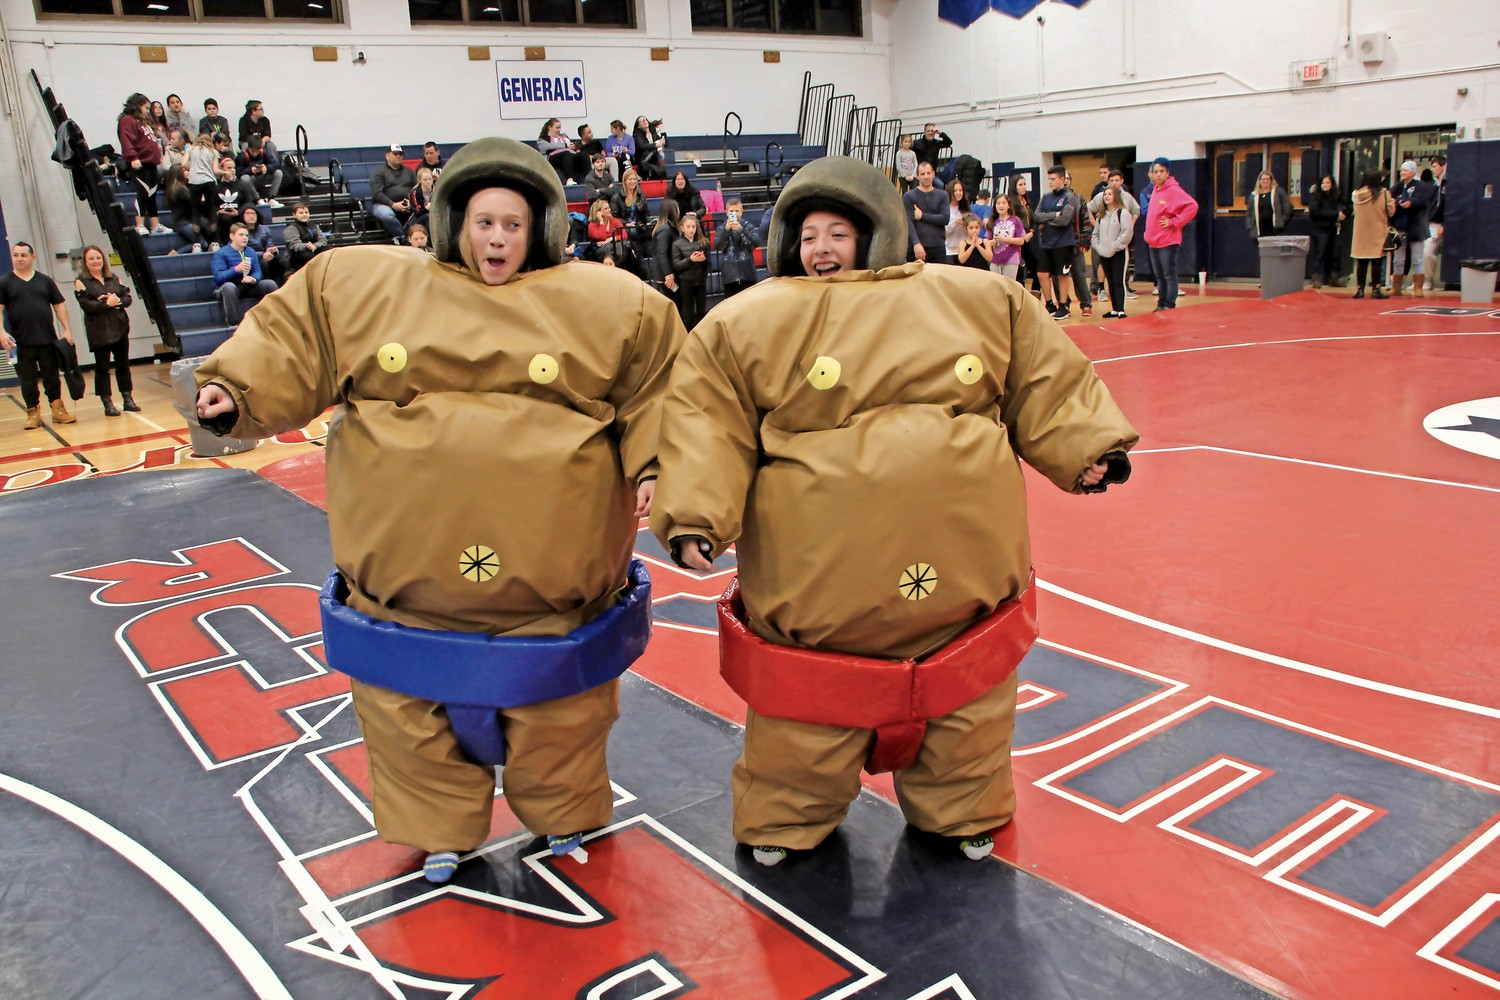 MacArthur High School students Juliana Weltner, left, and Abby DellVecchio prepared to wrestle in rubber suits at the school's third annual sumo-wrestling competition on Jan. 11.